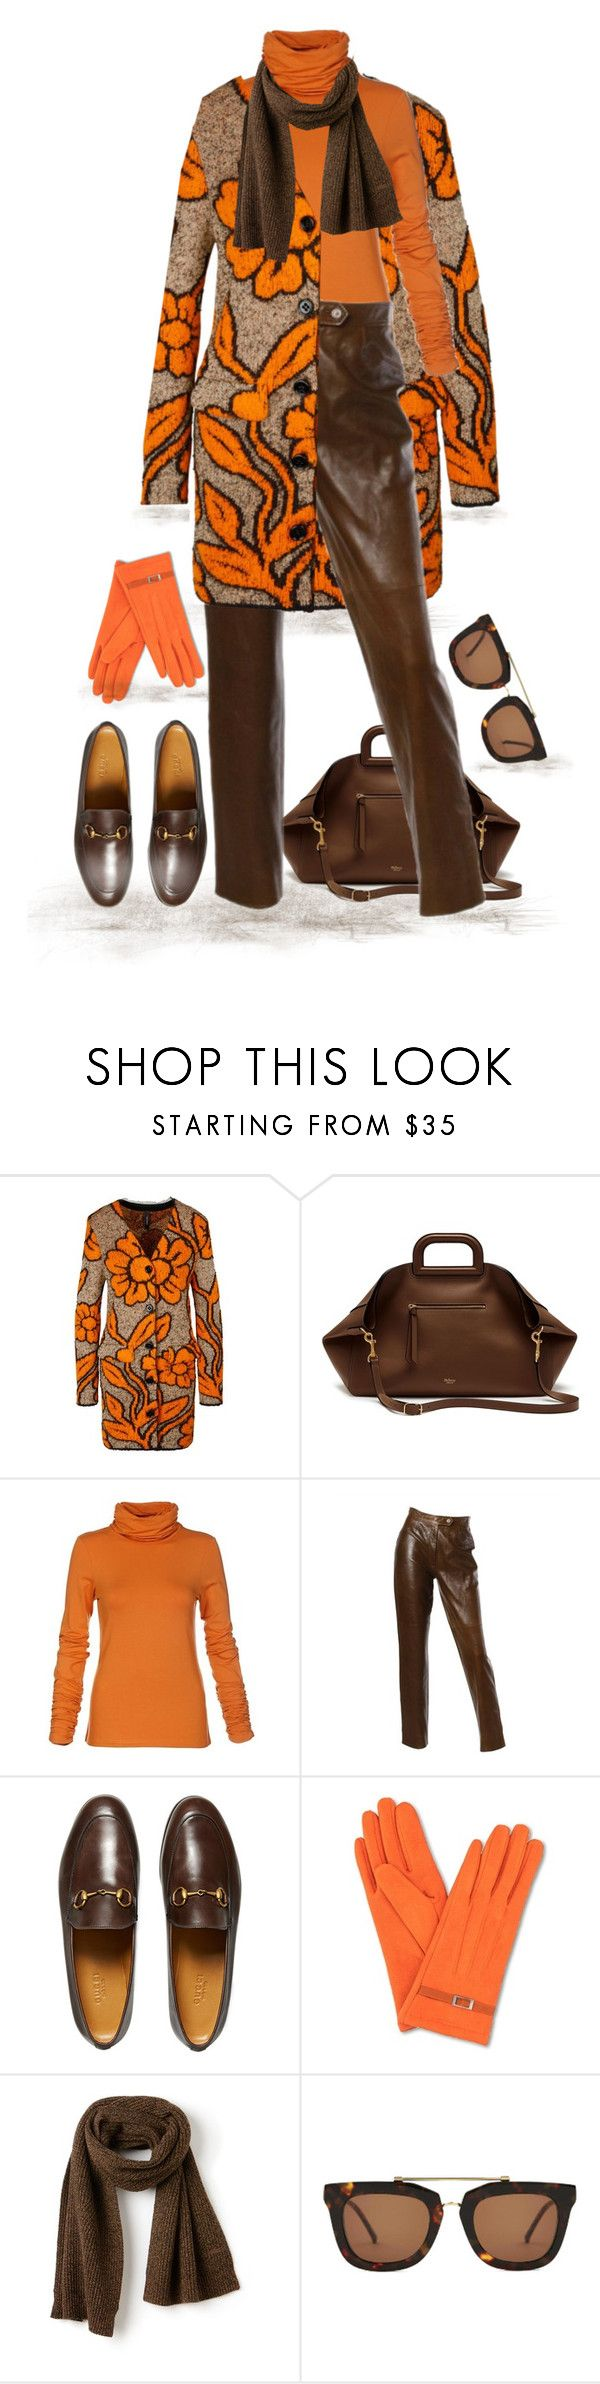 """""""Autumn Warmth(outfit only)"""" by runners ❤ liked on Polyvore featuring MARC CAIN, Mulberry, Burberry, Gucci, Lacoste and Kaibosh"""